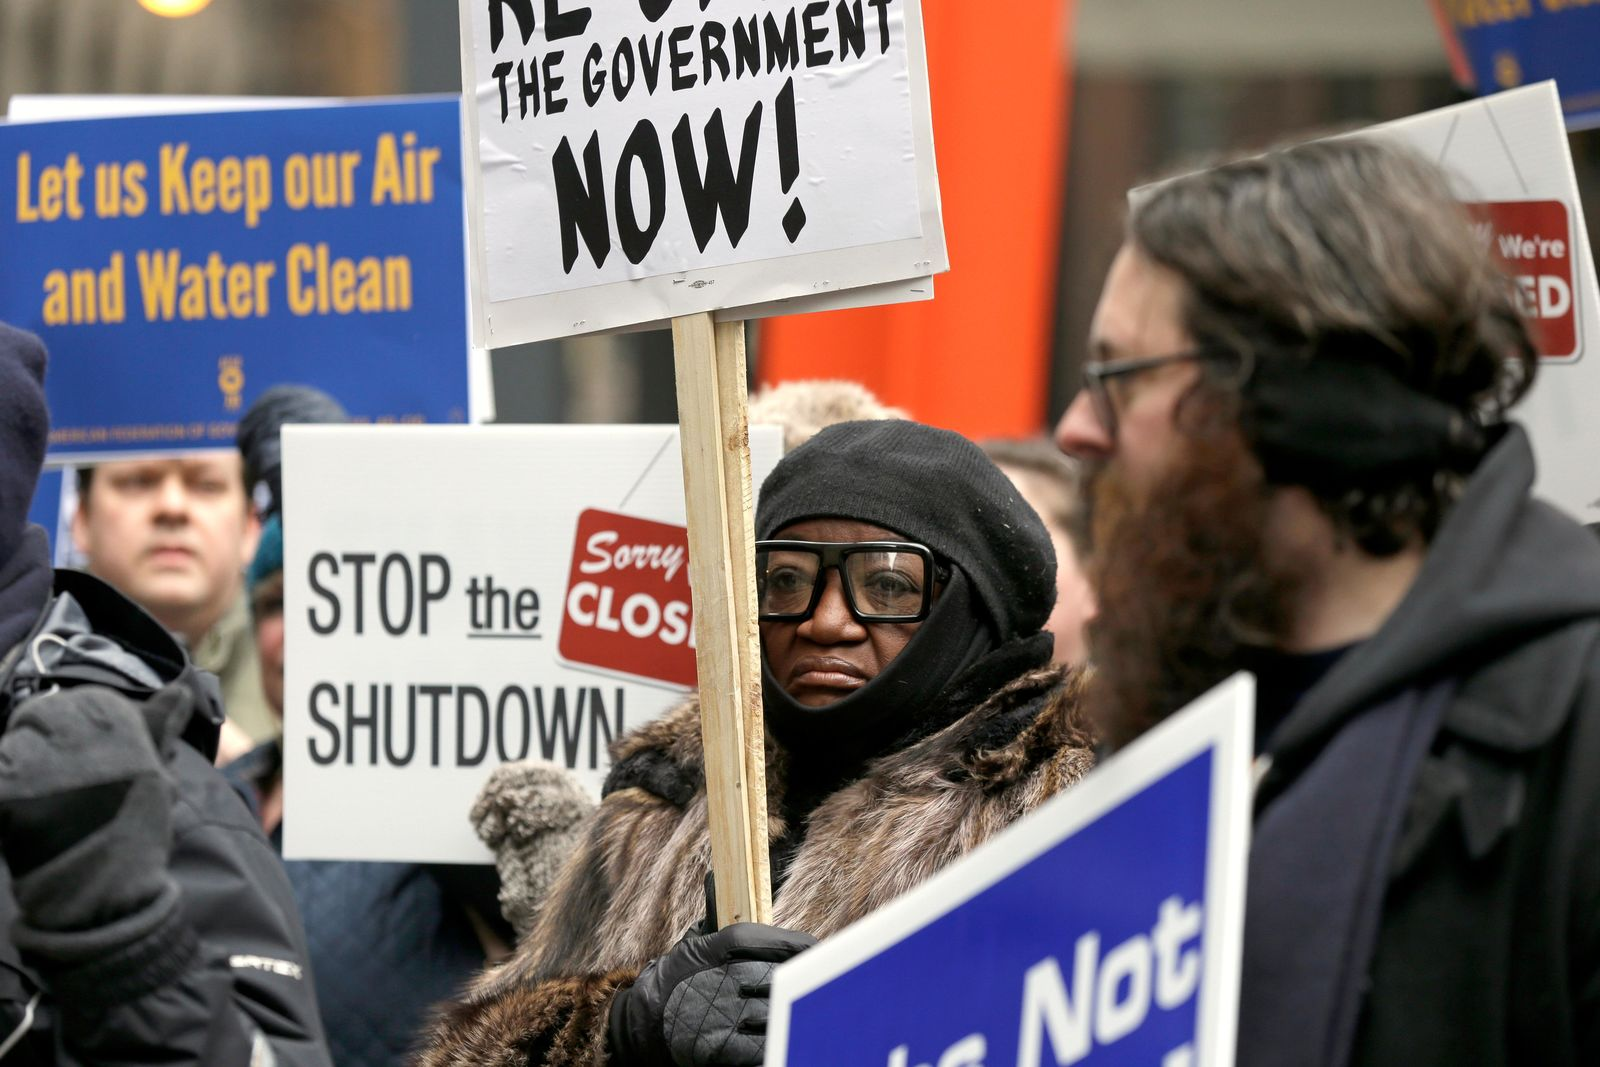 Government workers rally against the partial government shutdown at Federal Plaza, Thursday, Jan. 10, 2019, in Chicago. The partial government shutdown continues to drag on with hundreds of thousands of federal workers off the job or working without pay as the border wall fight persists. (AP Photo/Kiichiro Sato)